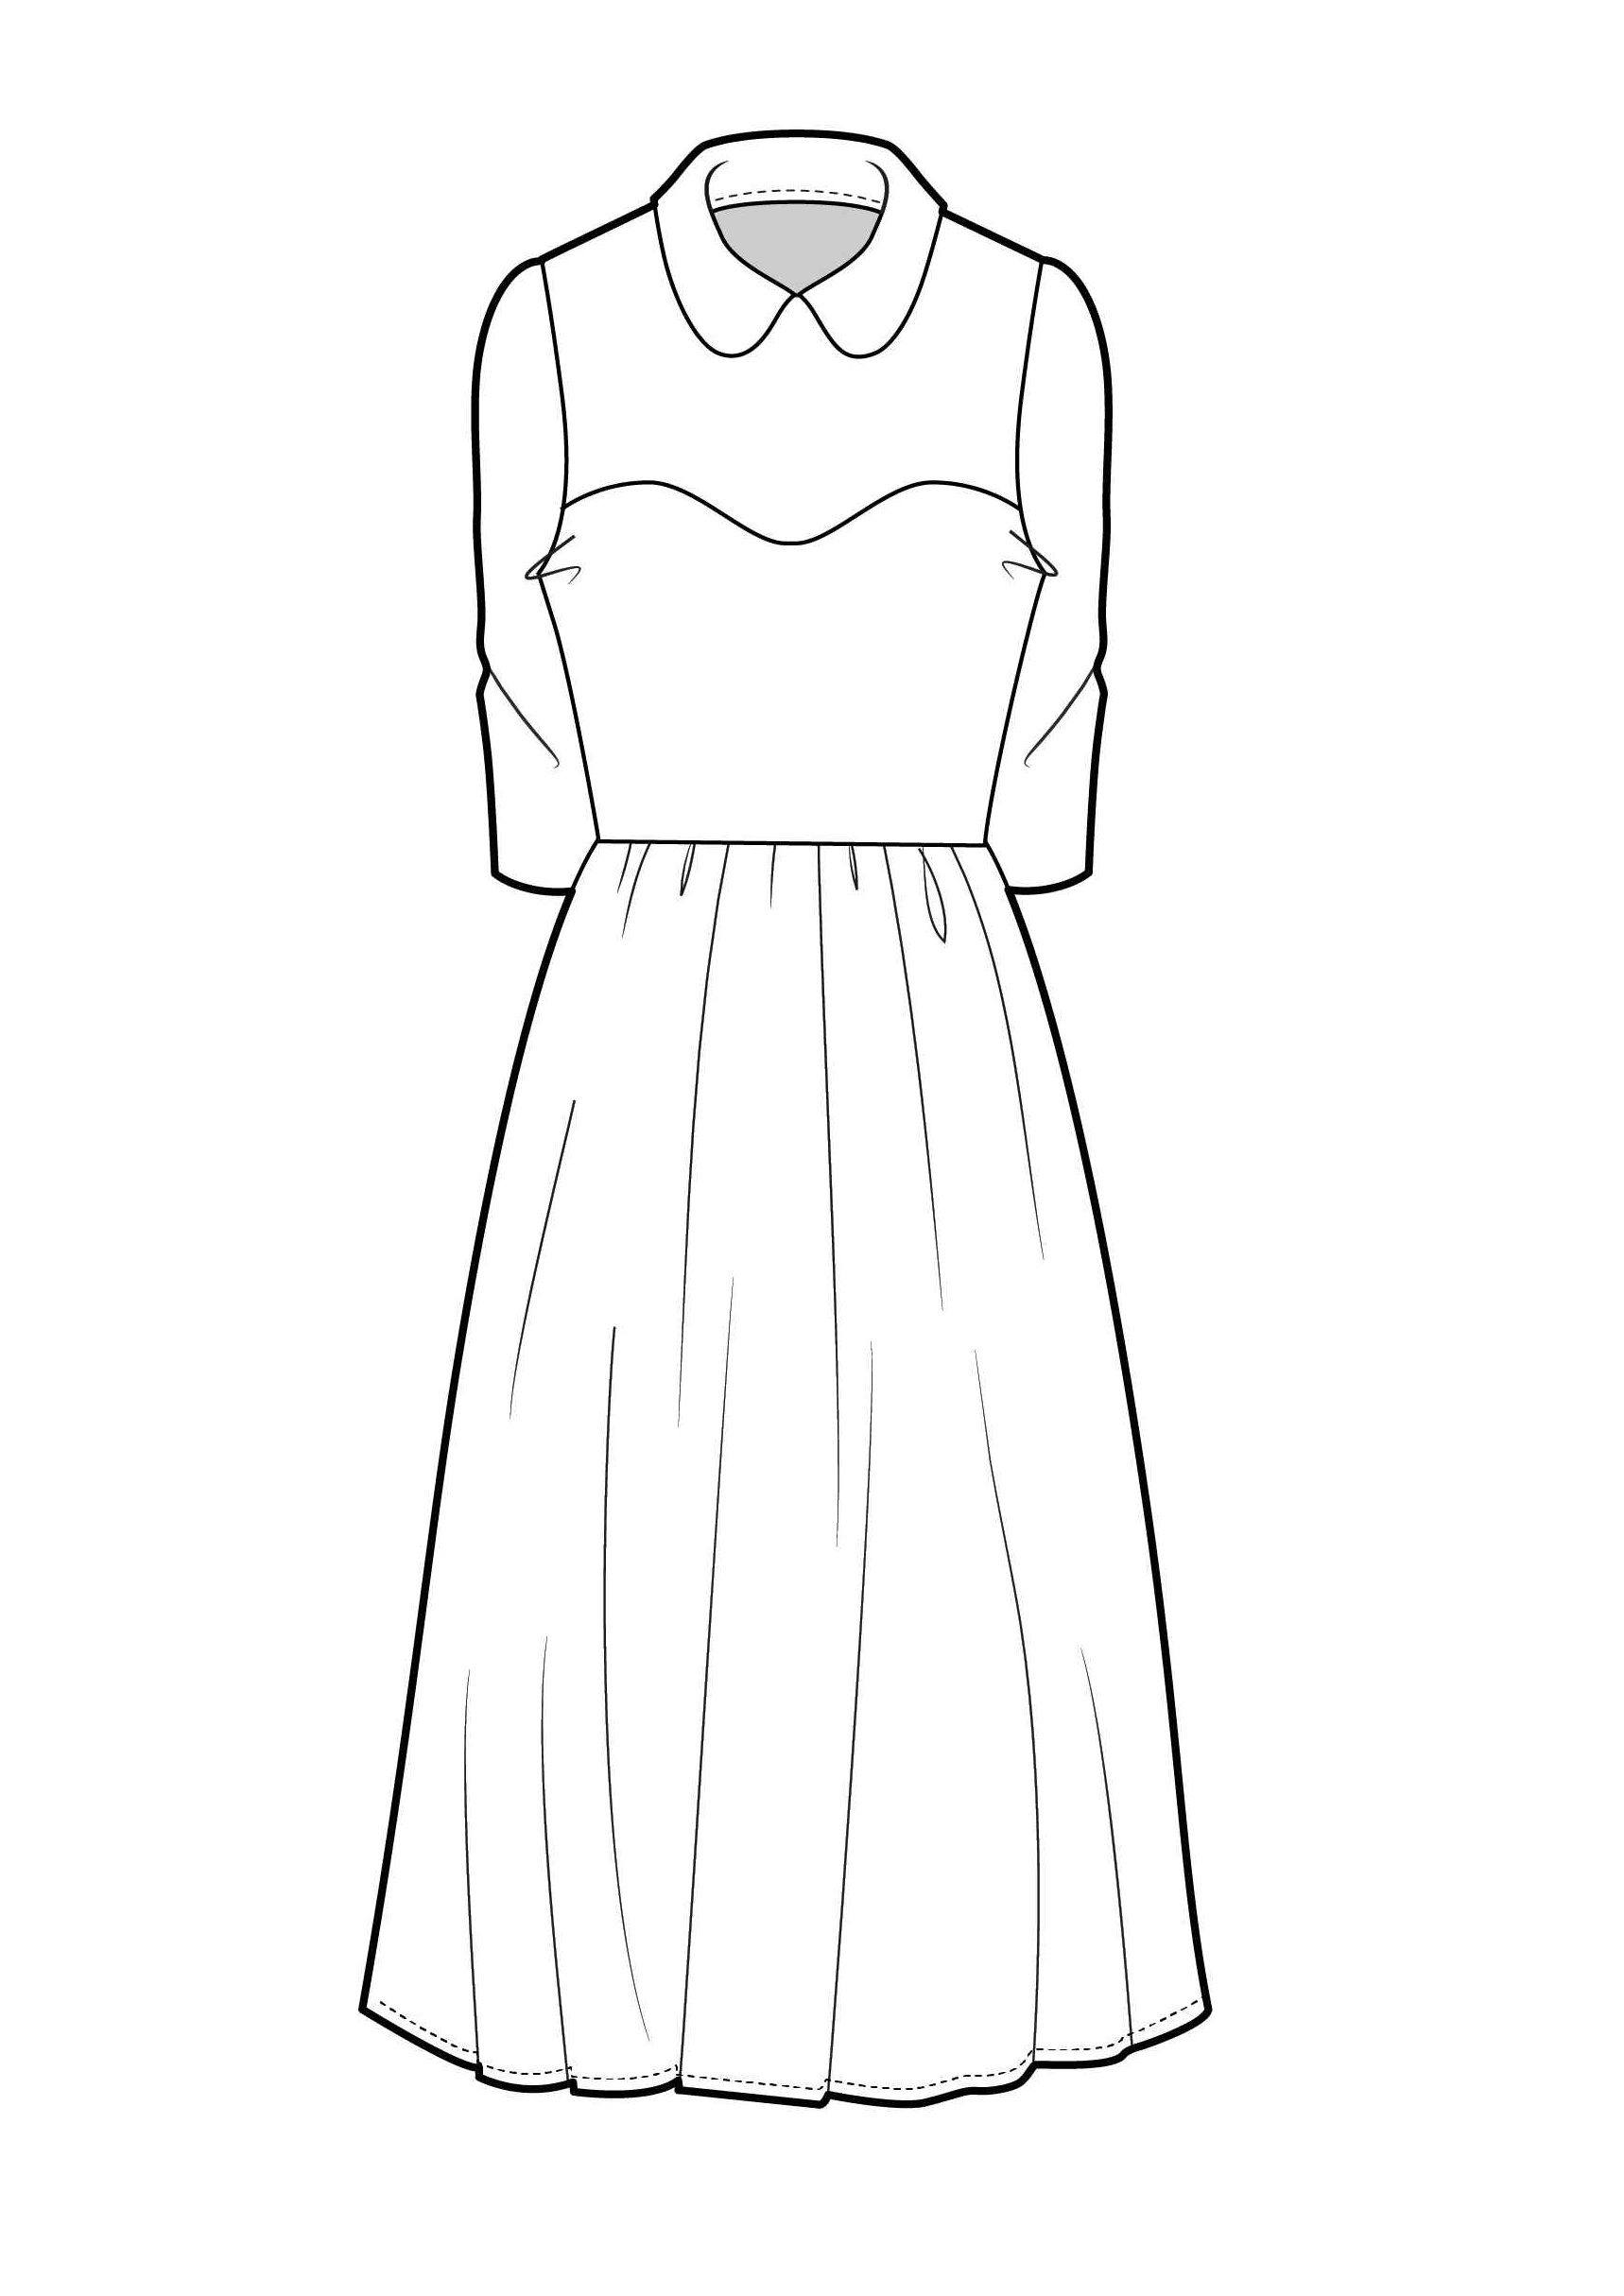 Collared Dress Com Imagens Croquis Design De Moda Moda